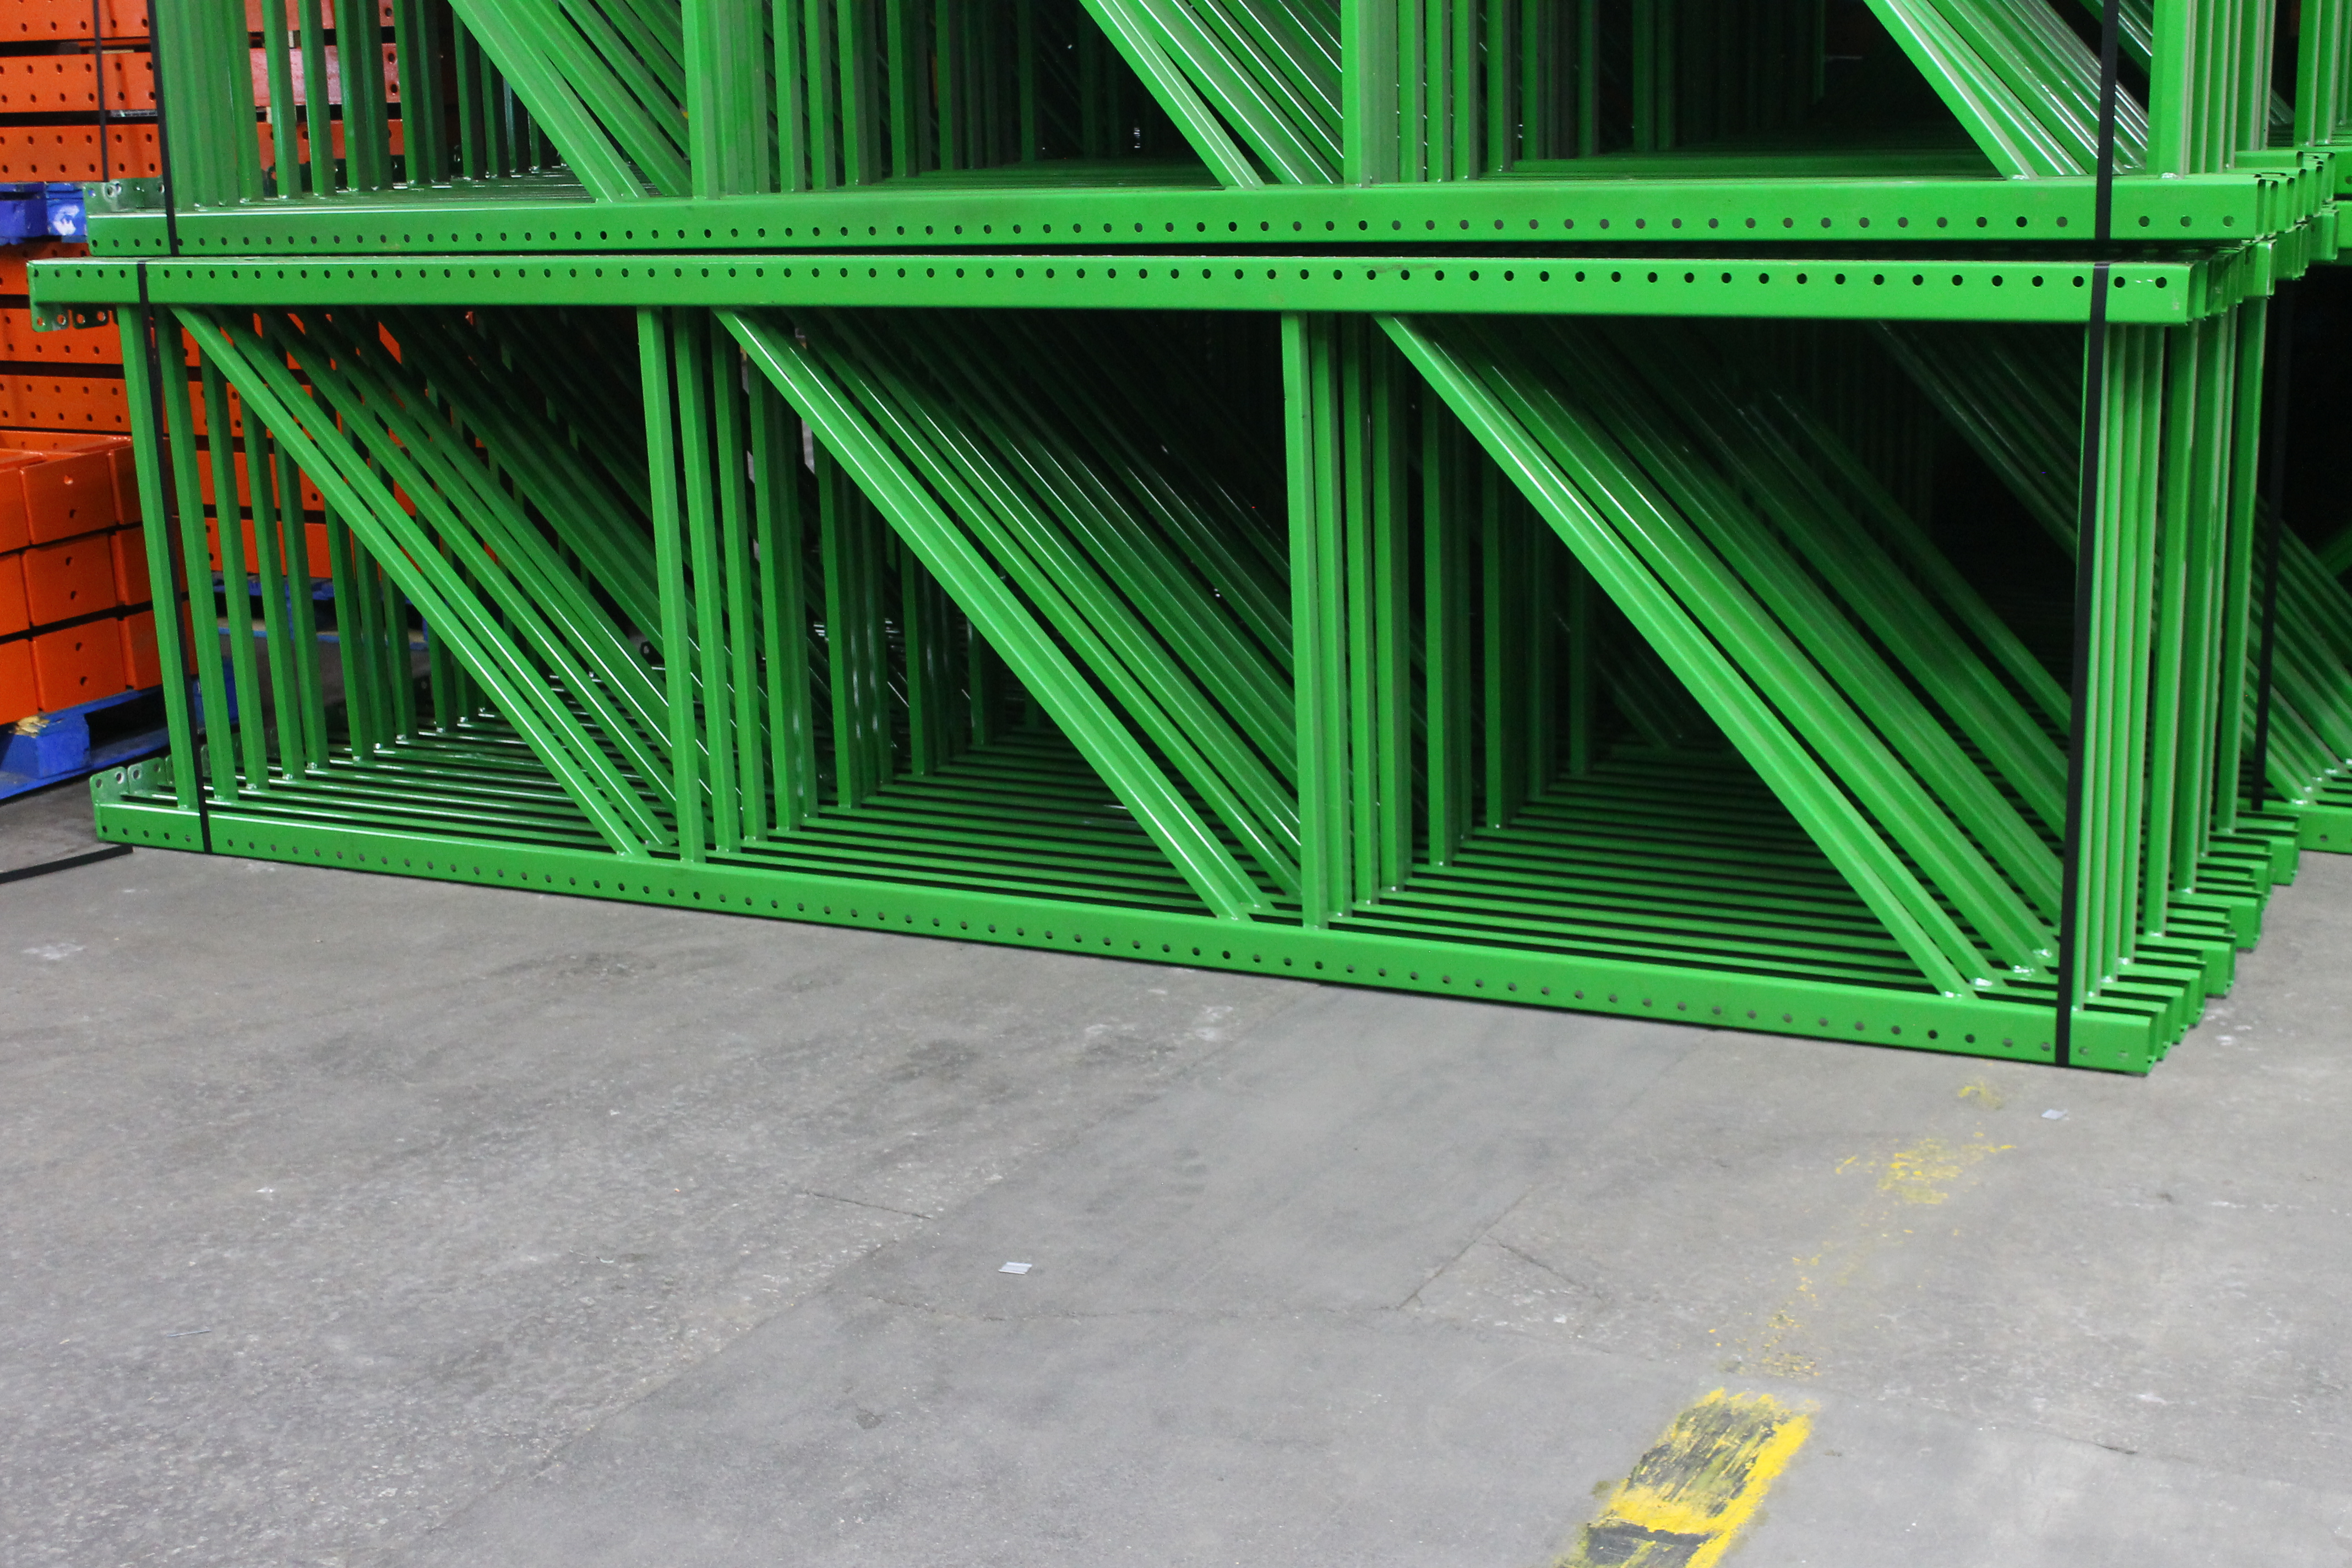 """NEW 60 PCS OF TEARDROP UPRIGHT. SIZE 12'H X 42""""D, 3""""X 3"""" GREEN - Image 2 of 3"""